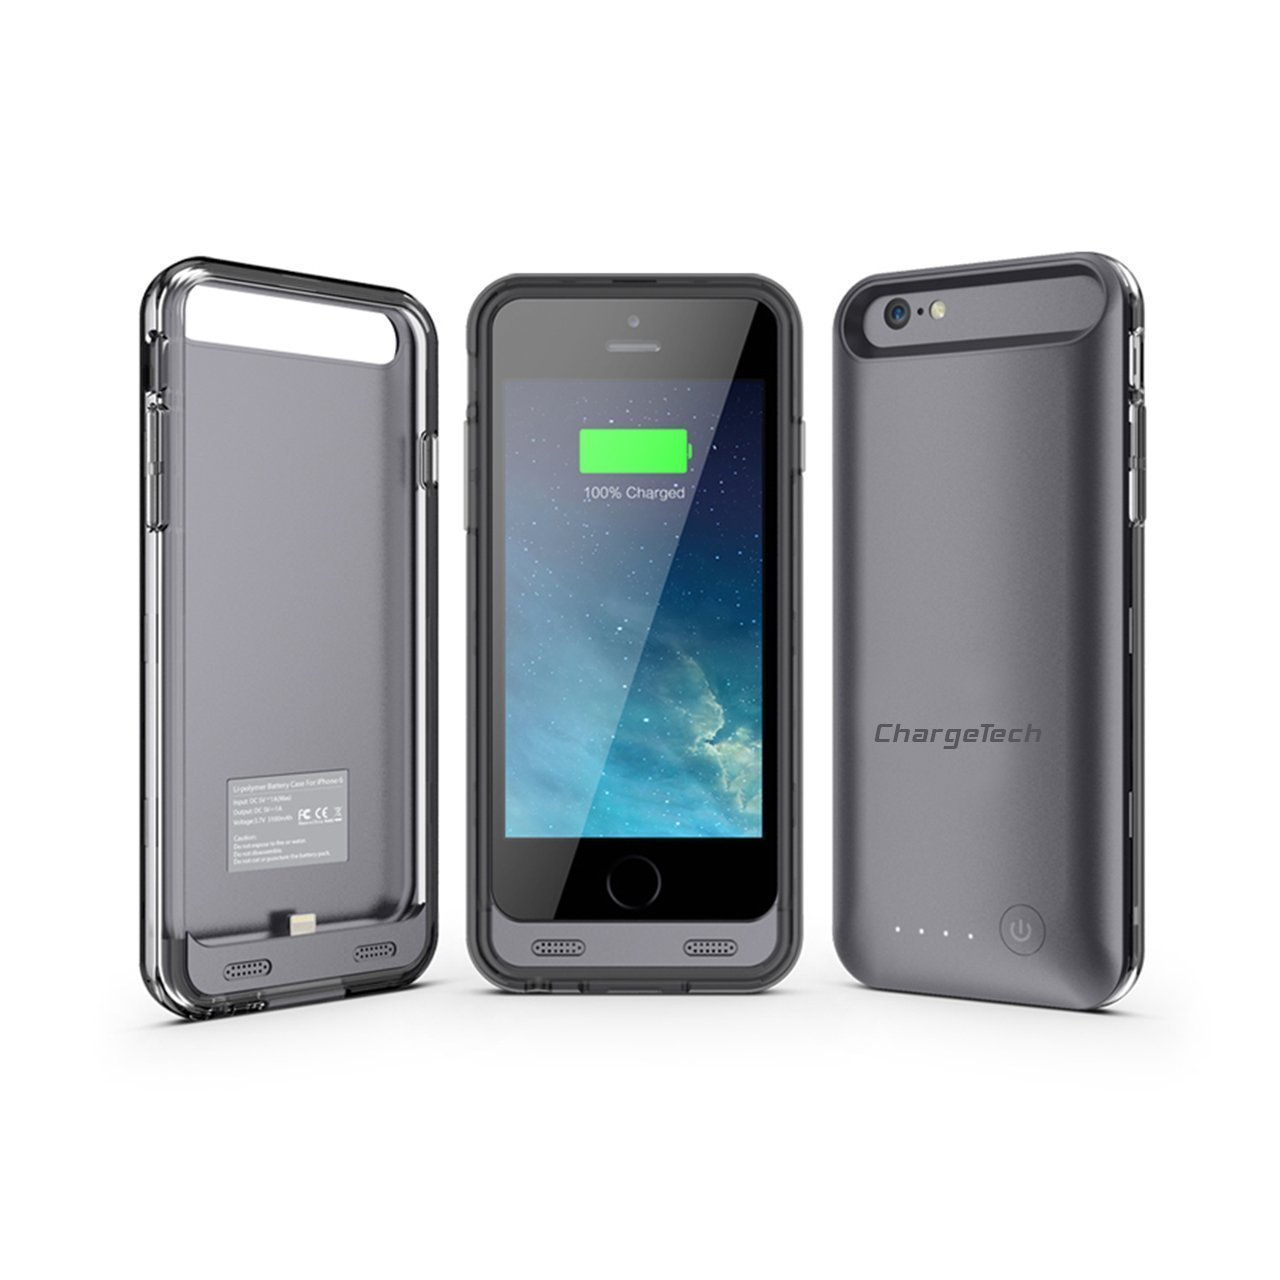 separation shoes b32f7 61ff6 ChargeTech: Thinnest iPhone 6 Battery Case [MFi Certified ...